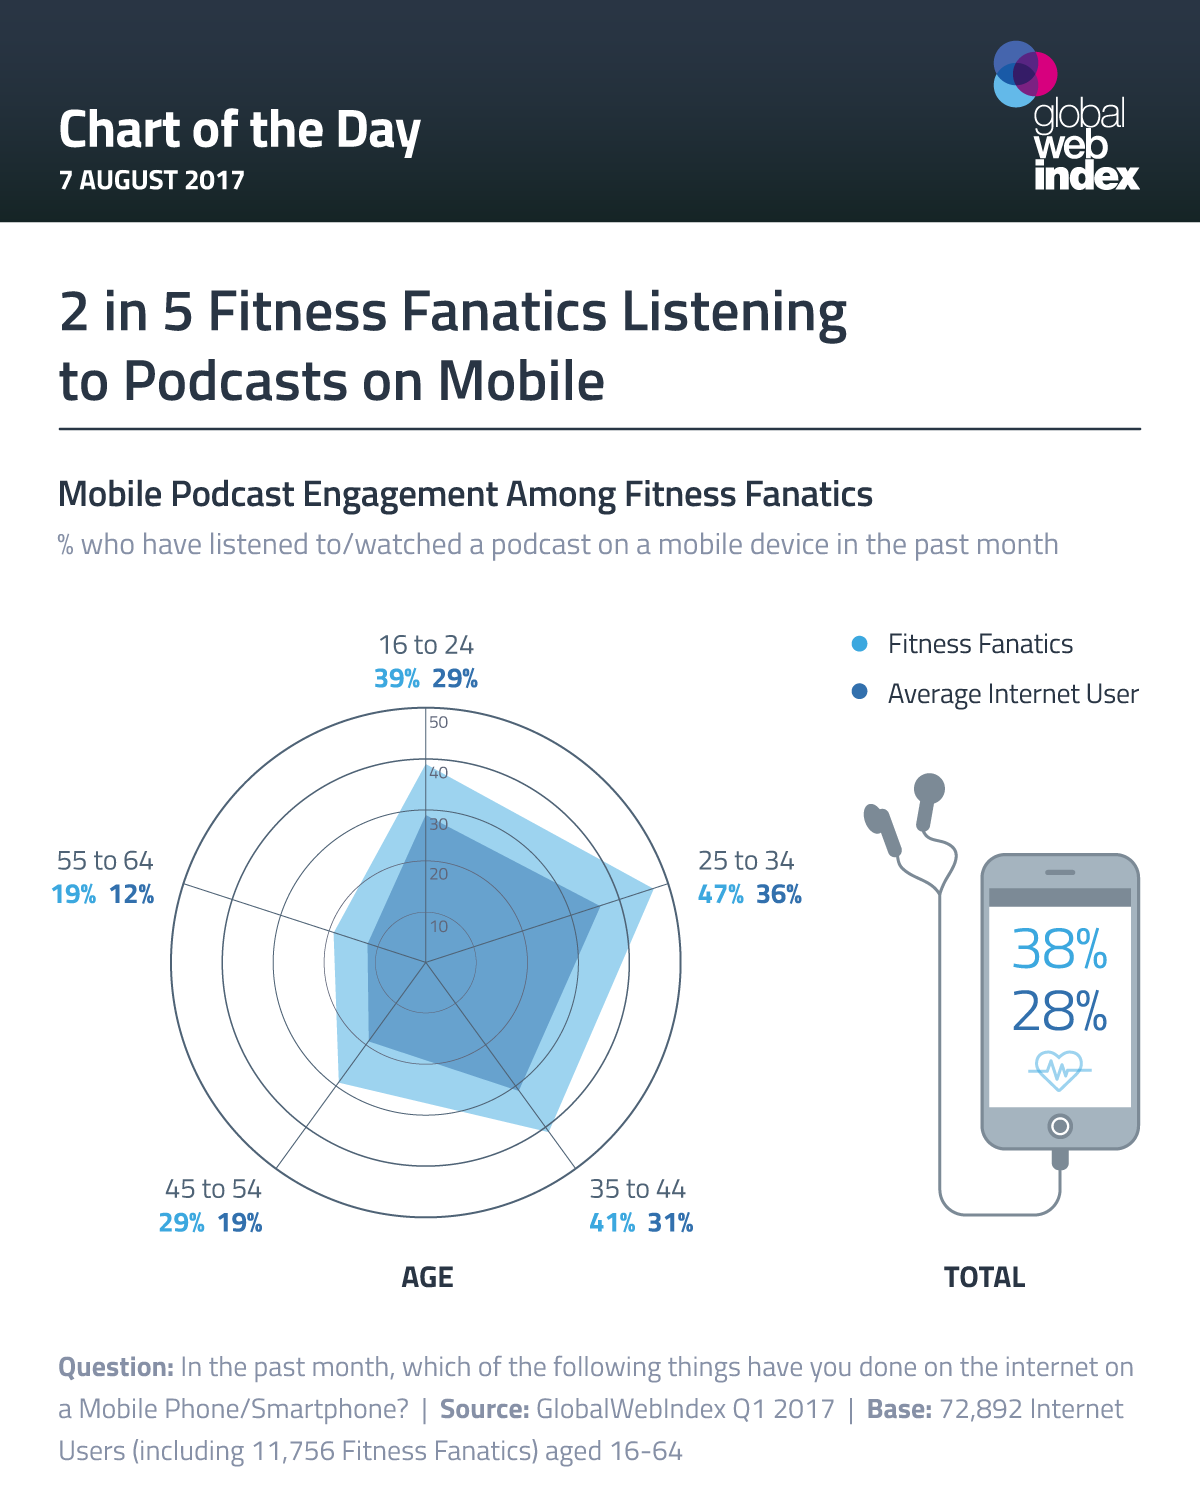 2 in 5 Fitness Fanatics Listening to Podcasts on Mobile